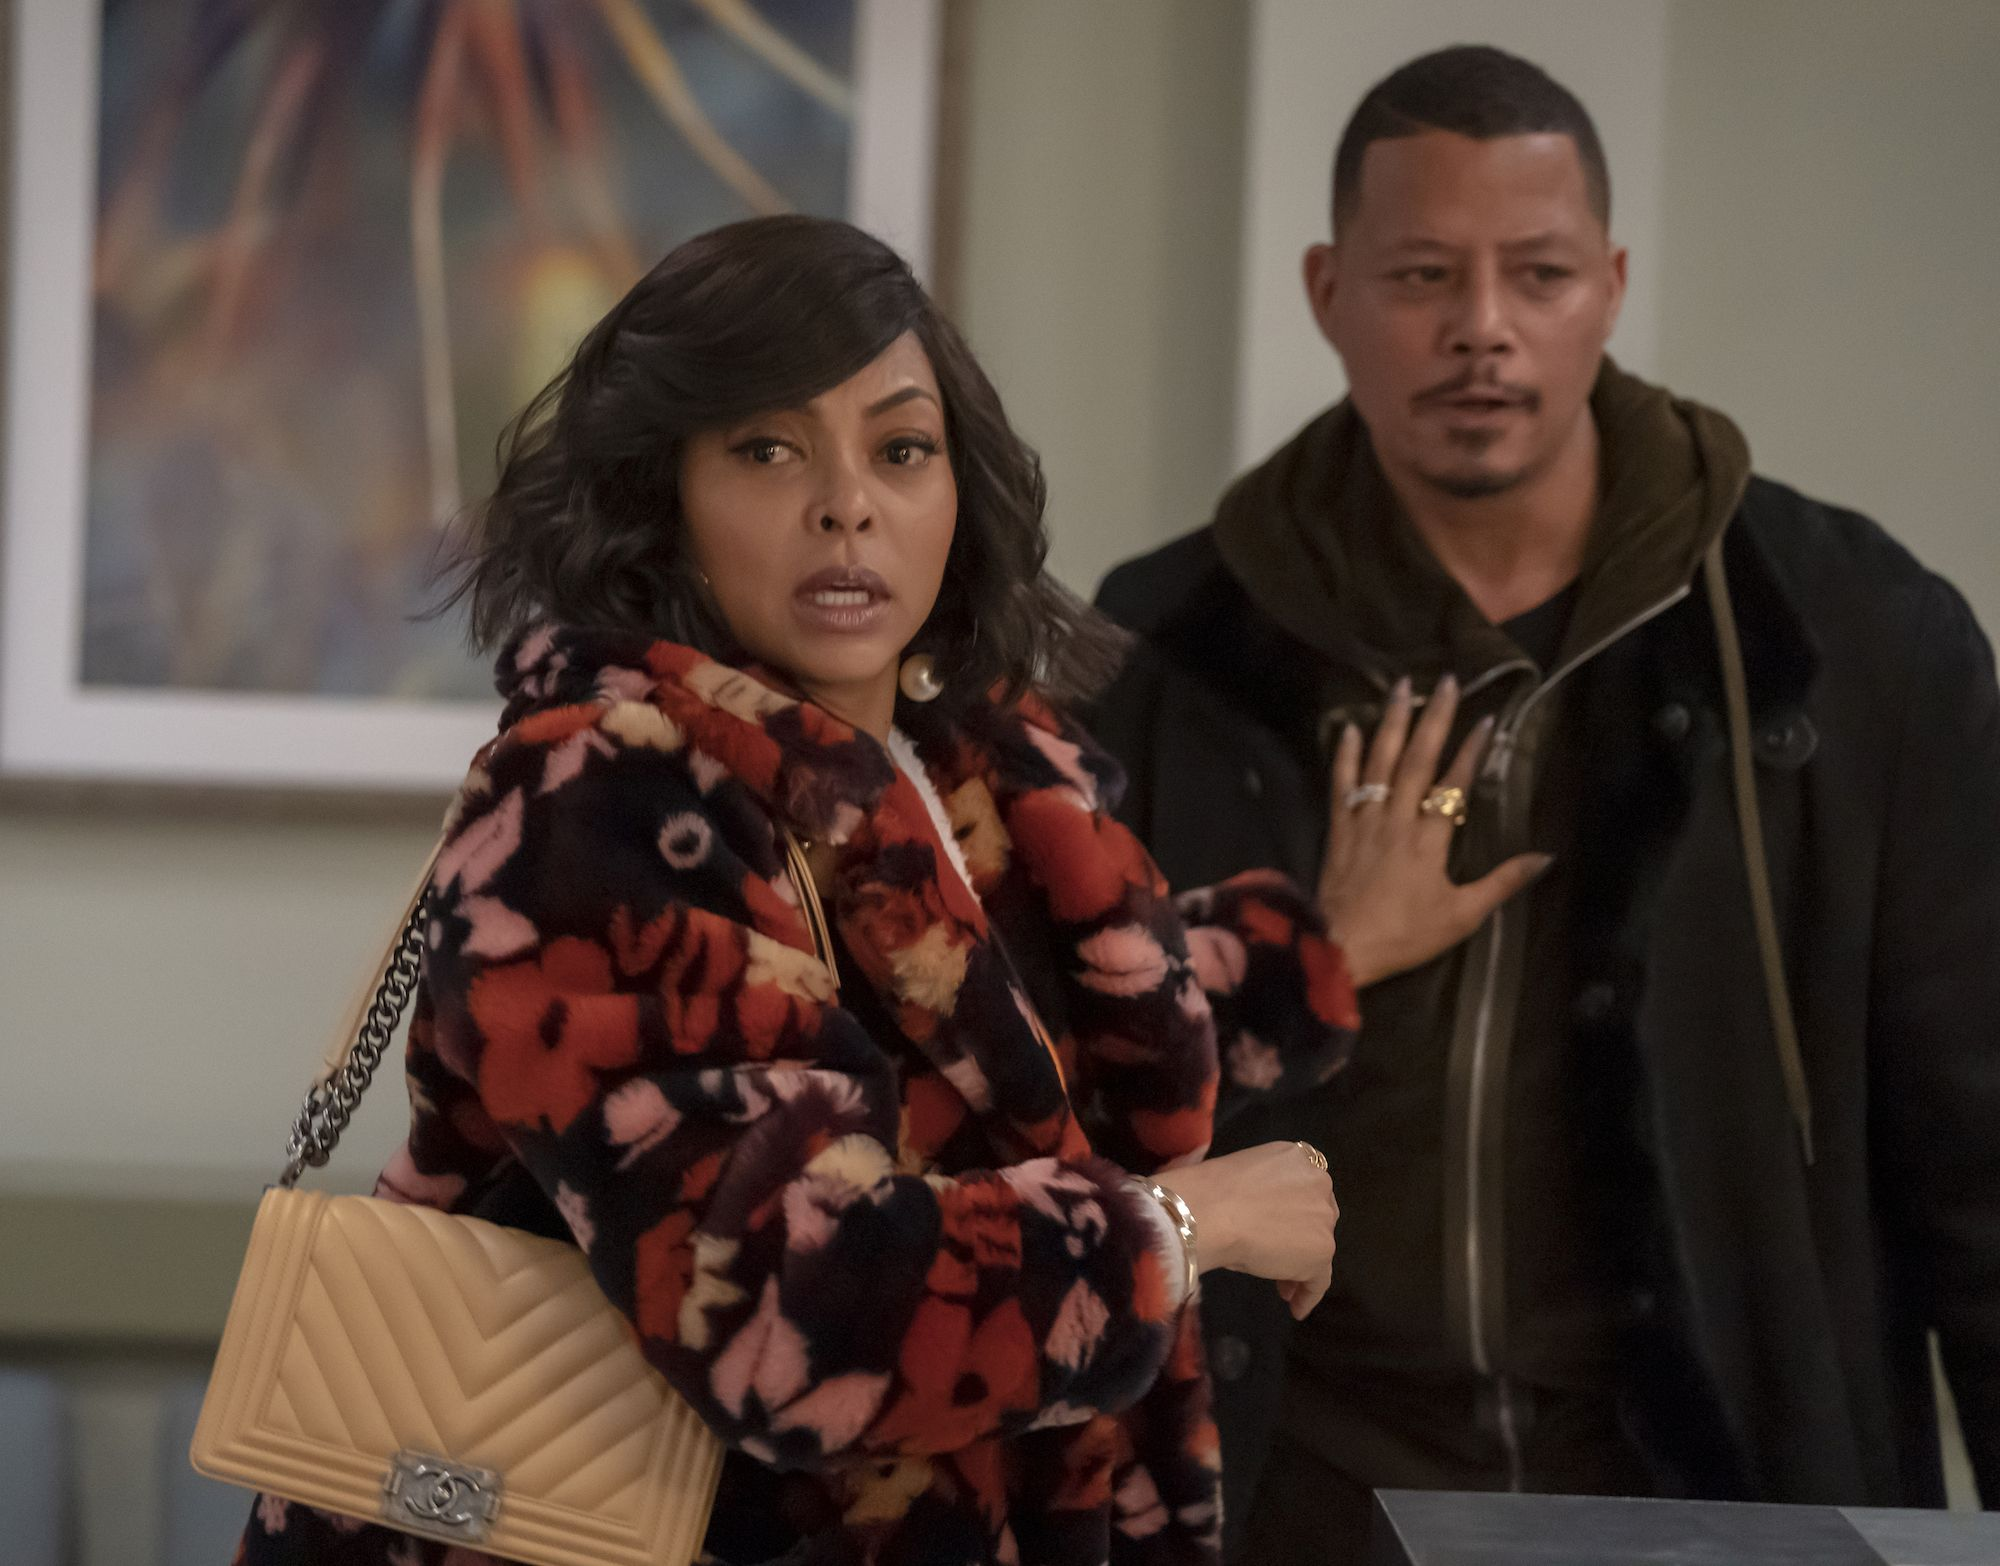 Fall TV Show Premiere Dates 2019 - Schedule of the Best New Shows